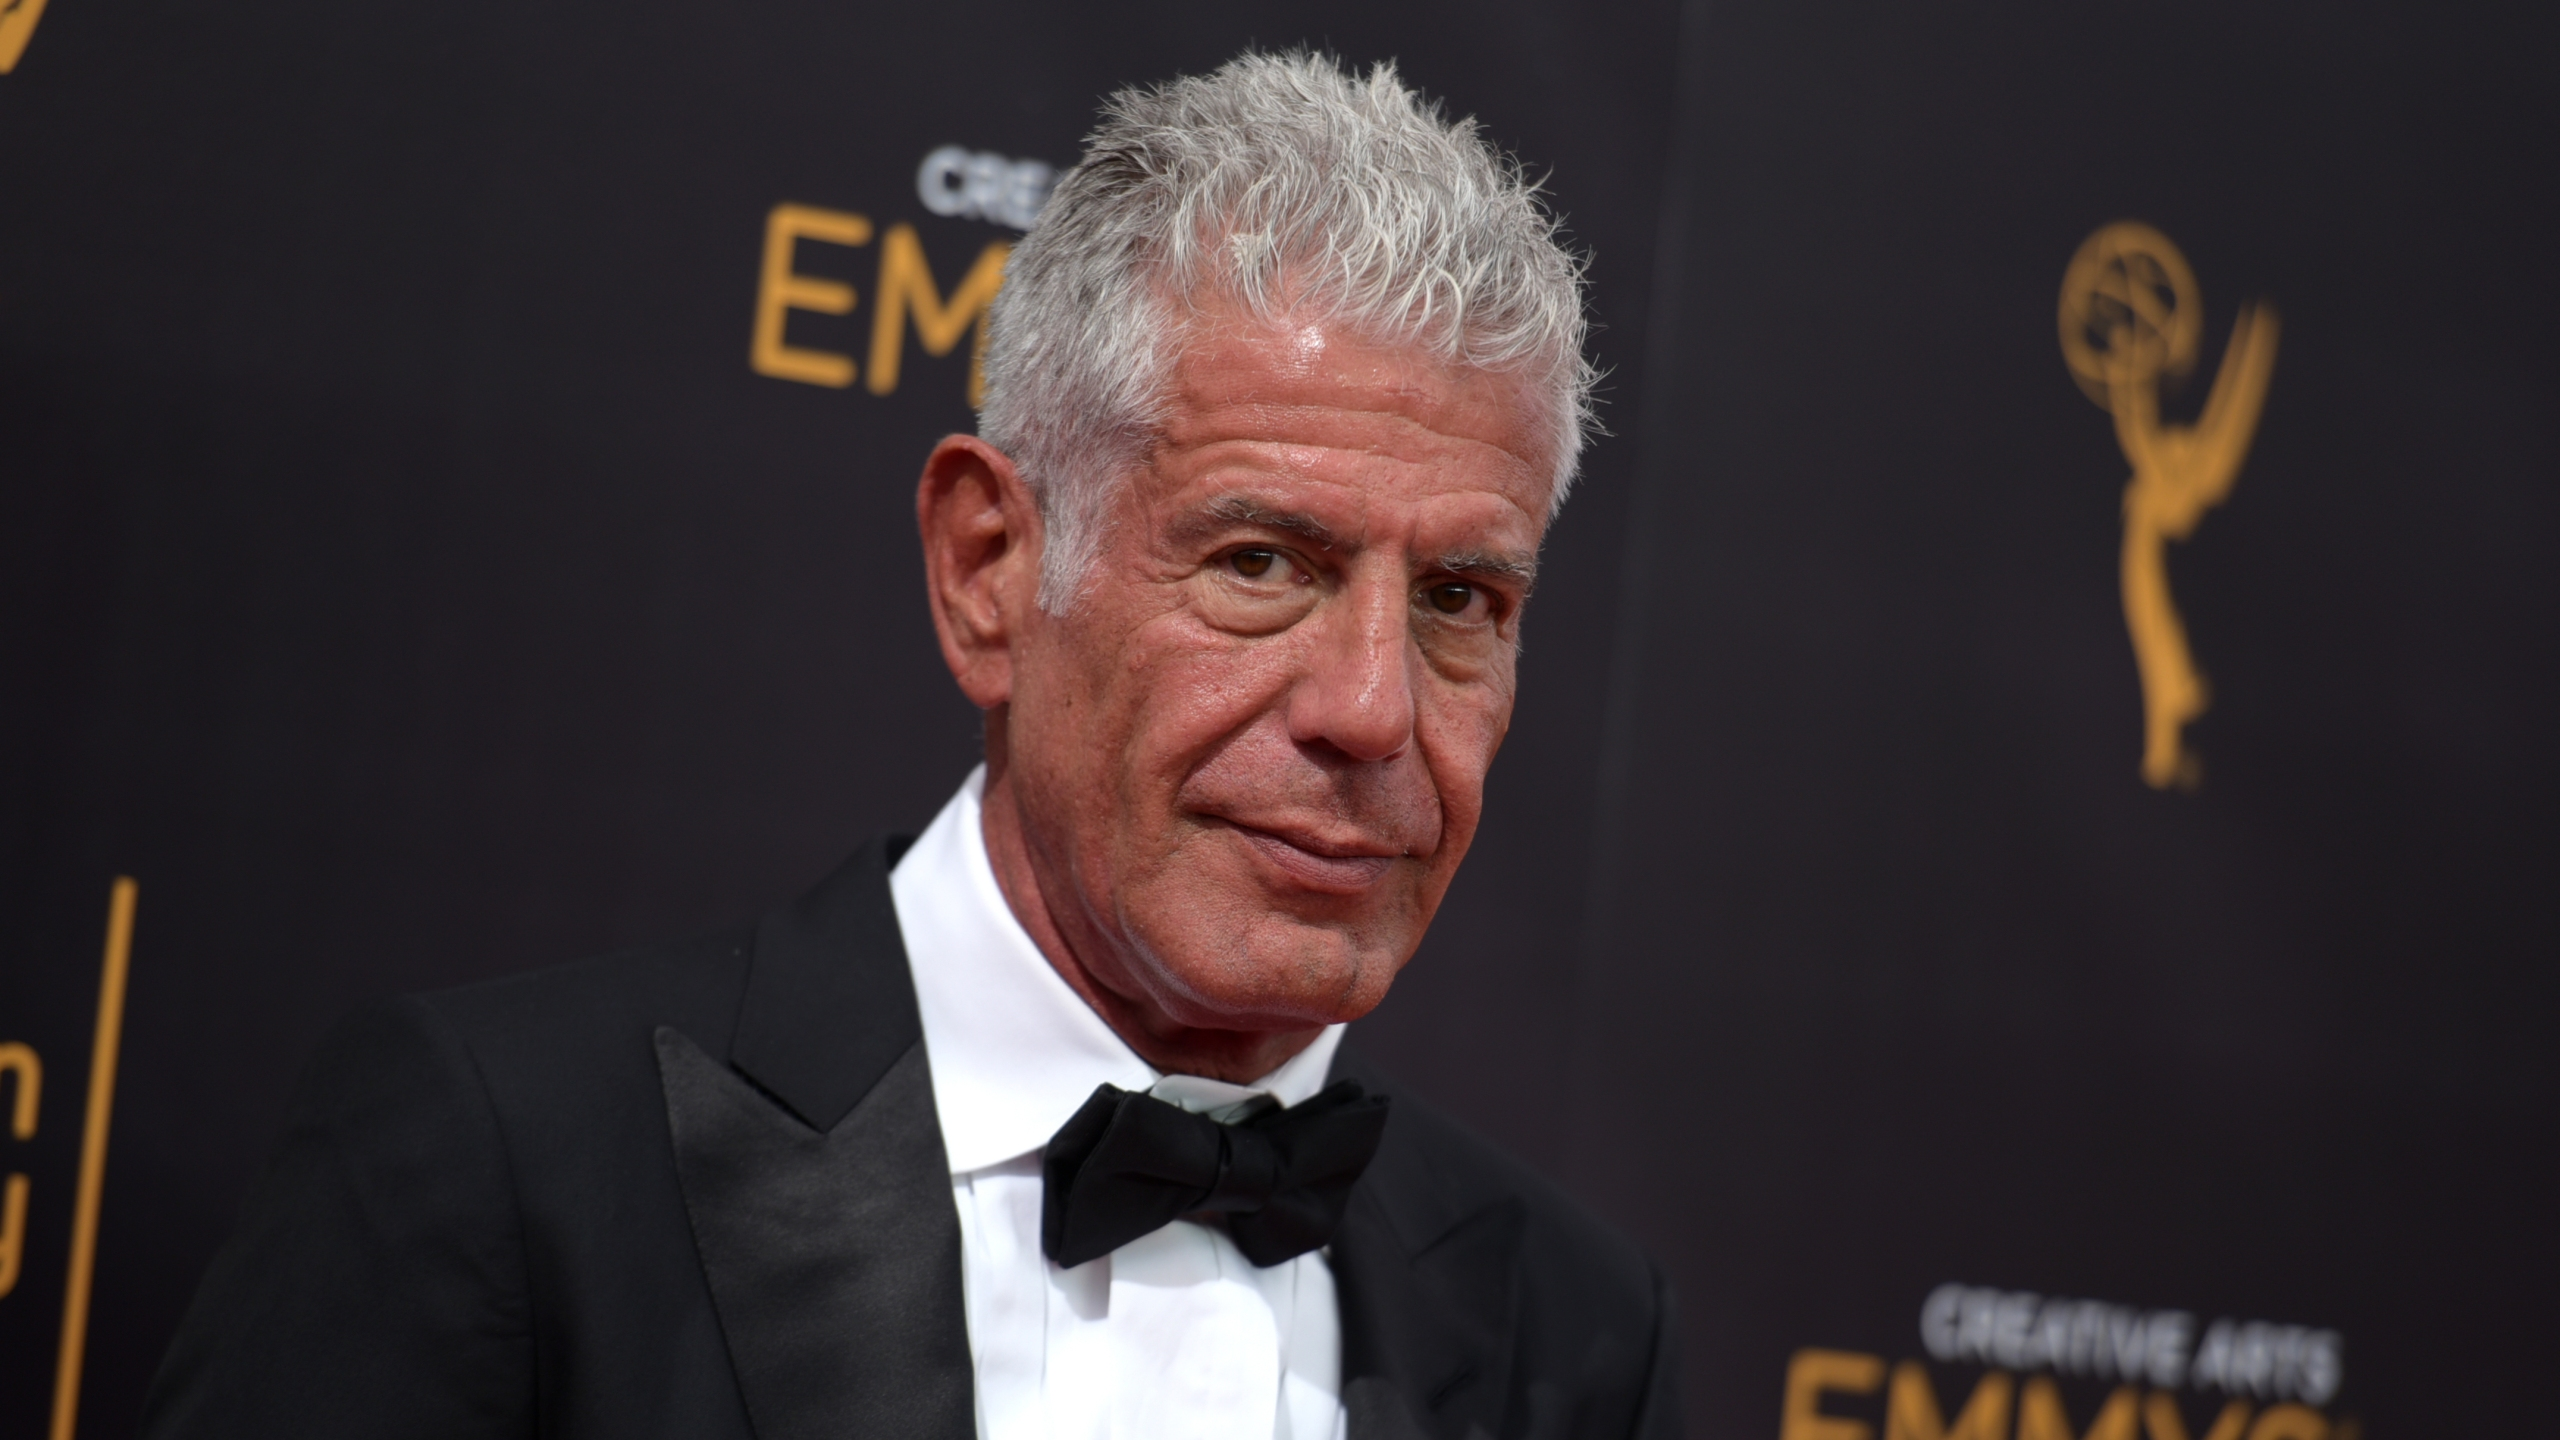 Anthony Bourdain arrives at night two of the Creative Arts Emmy Awards at the Microsoft Theater on Sunday, Sept. 11, 2016, in Los Angeles. Photo by R